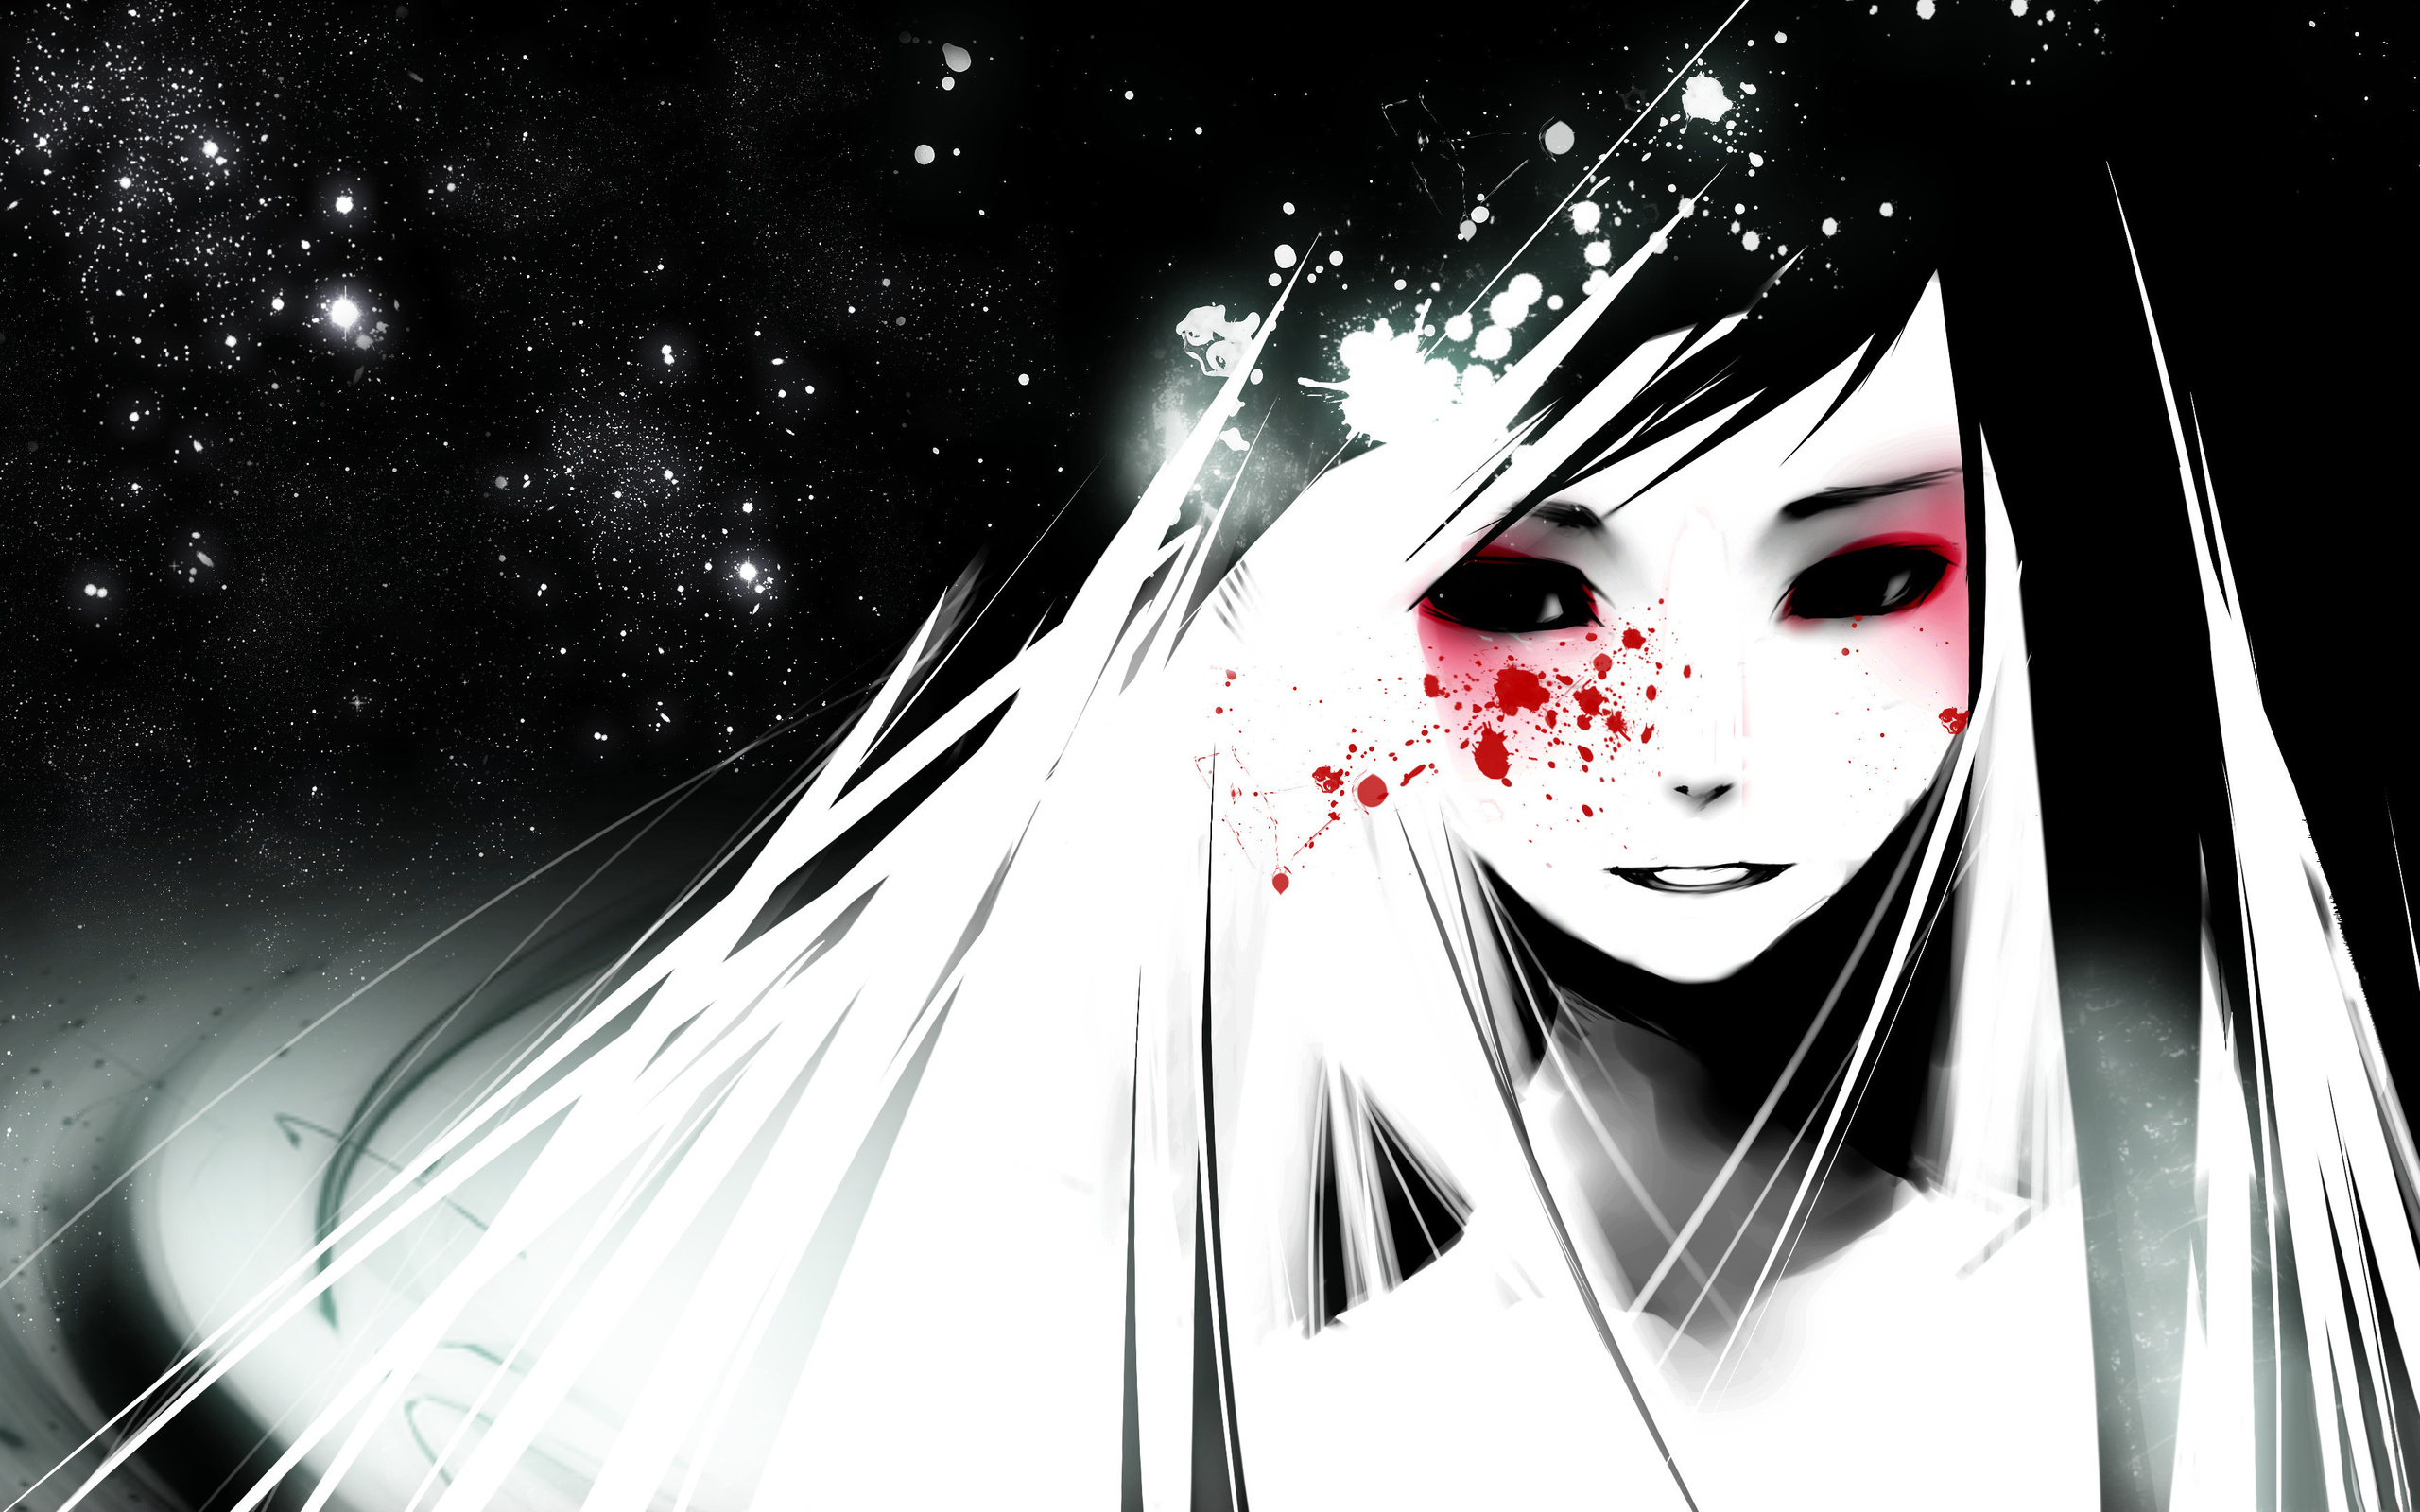 Dark Anime Cartoon Girl HD Image